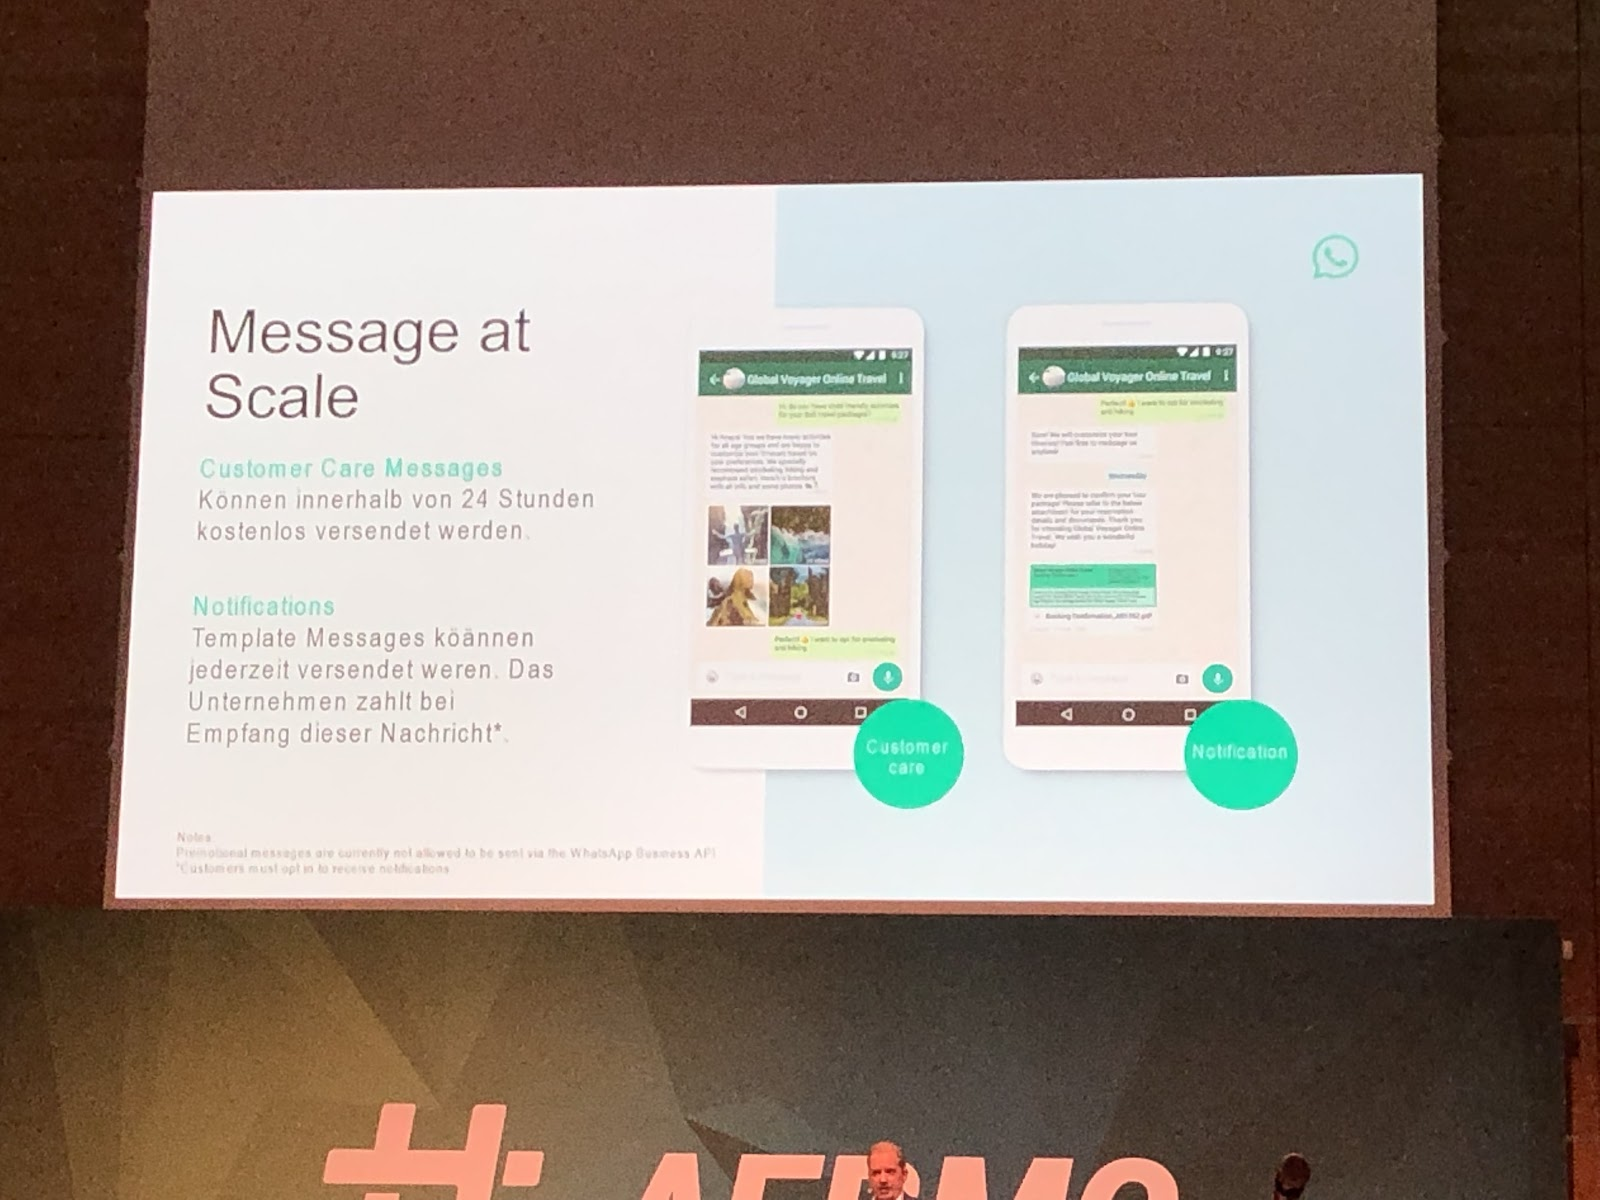 AFBMC WhatsApp Messages